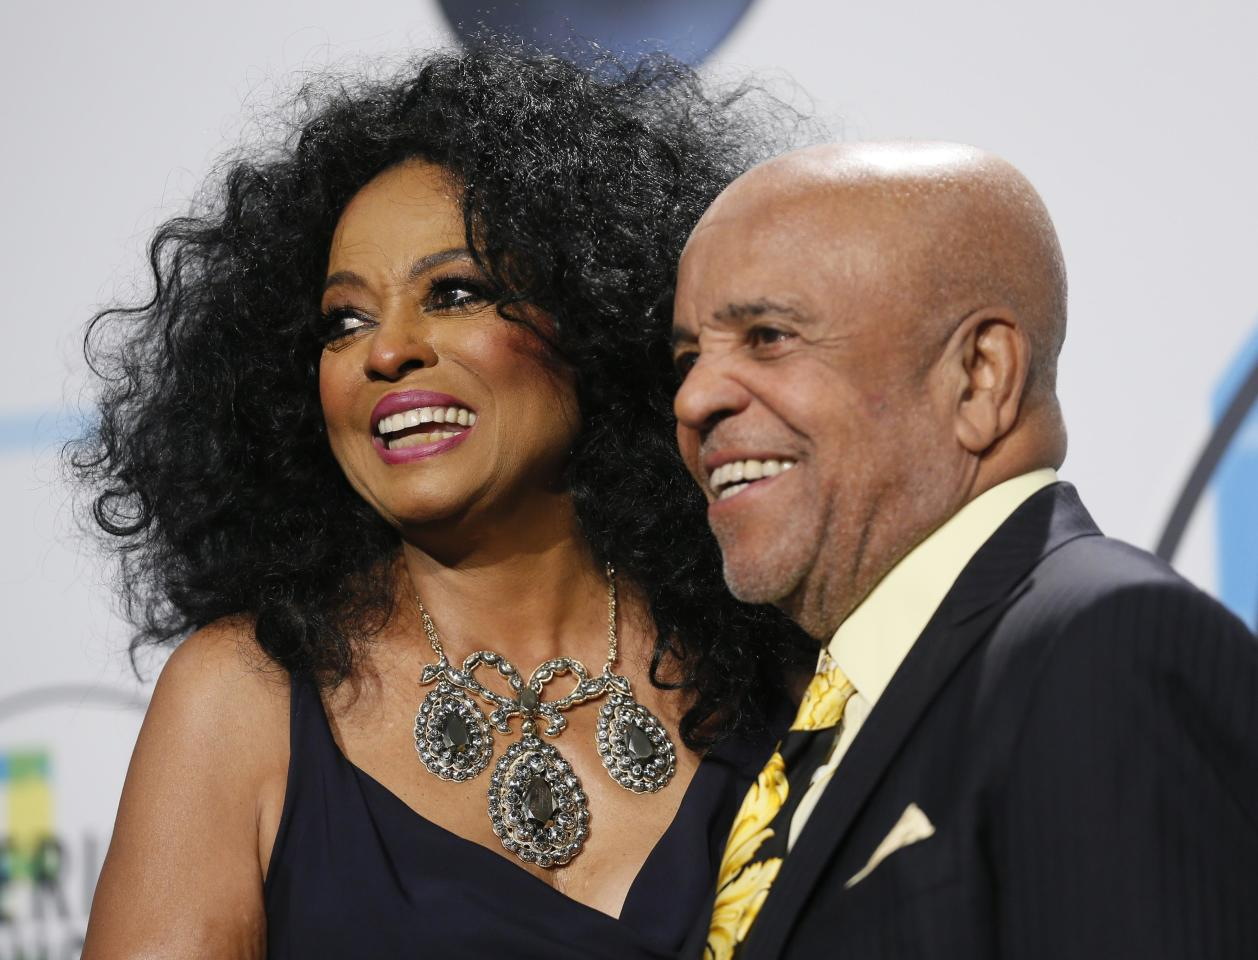 2017 American Music Awards - Photo Room - Los Angeles, California, U.S., 19/11/2017  Diana Ross and Berry Gordy. REUTERS/Danny Moloshok